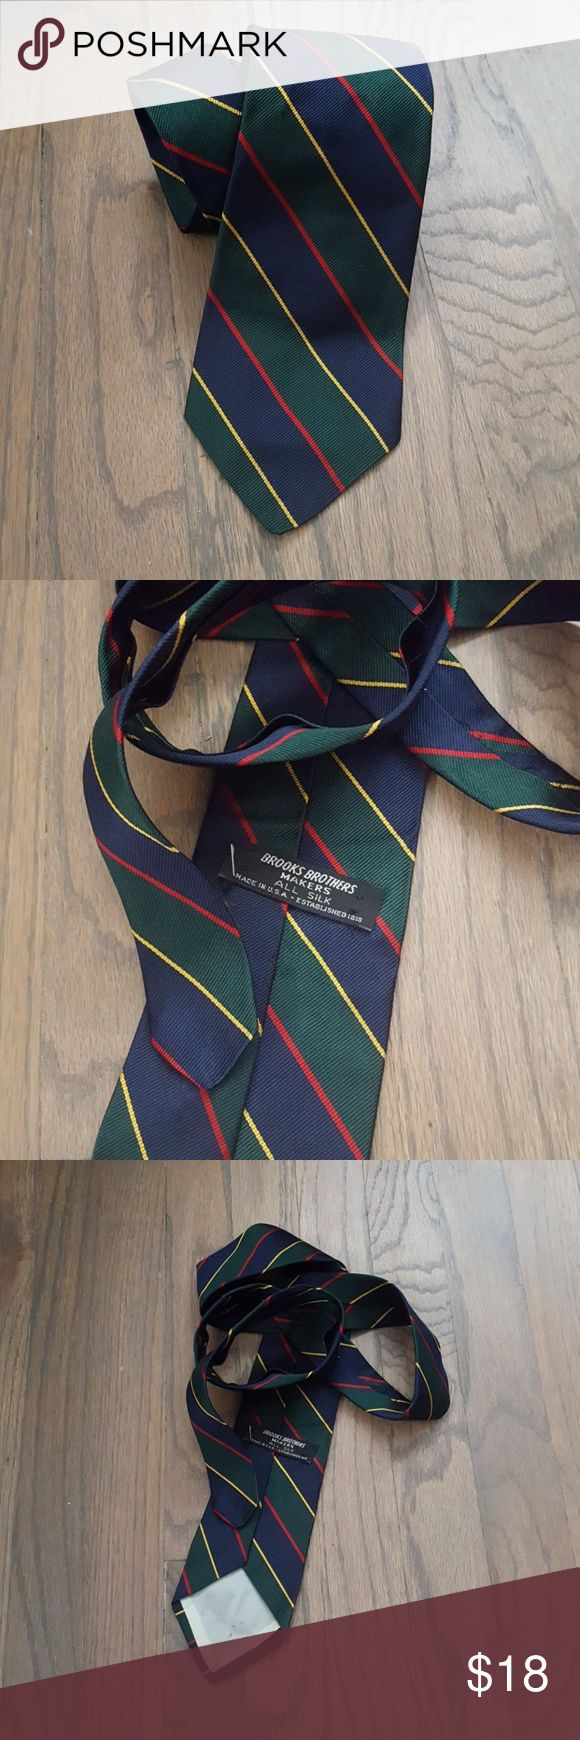 Vintage Brooks Brothers Silk USA Tie Traditionally classic vintage Brooks Brothers tie in Navy, Hunter green, gold, and crimson. Made in USA. Brooks Brothers Accessories Ties